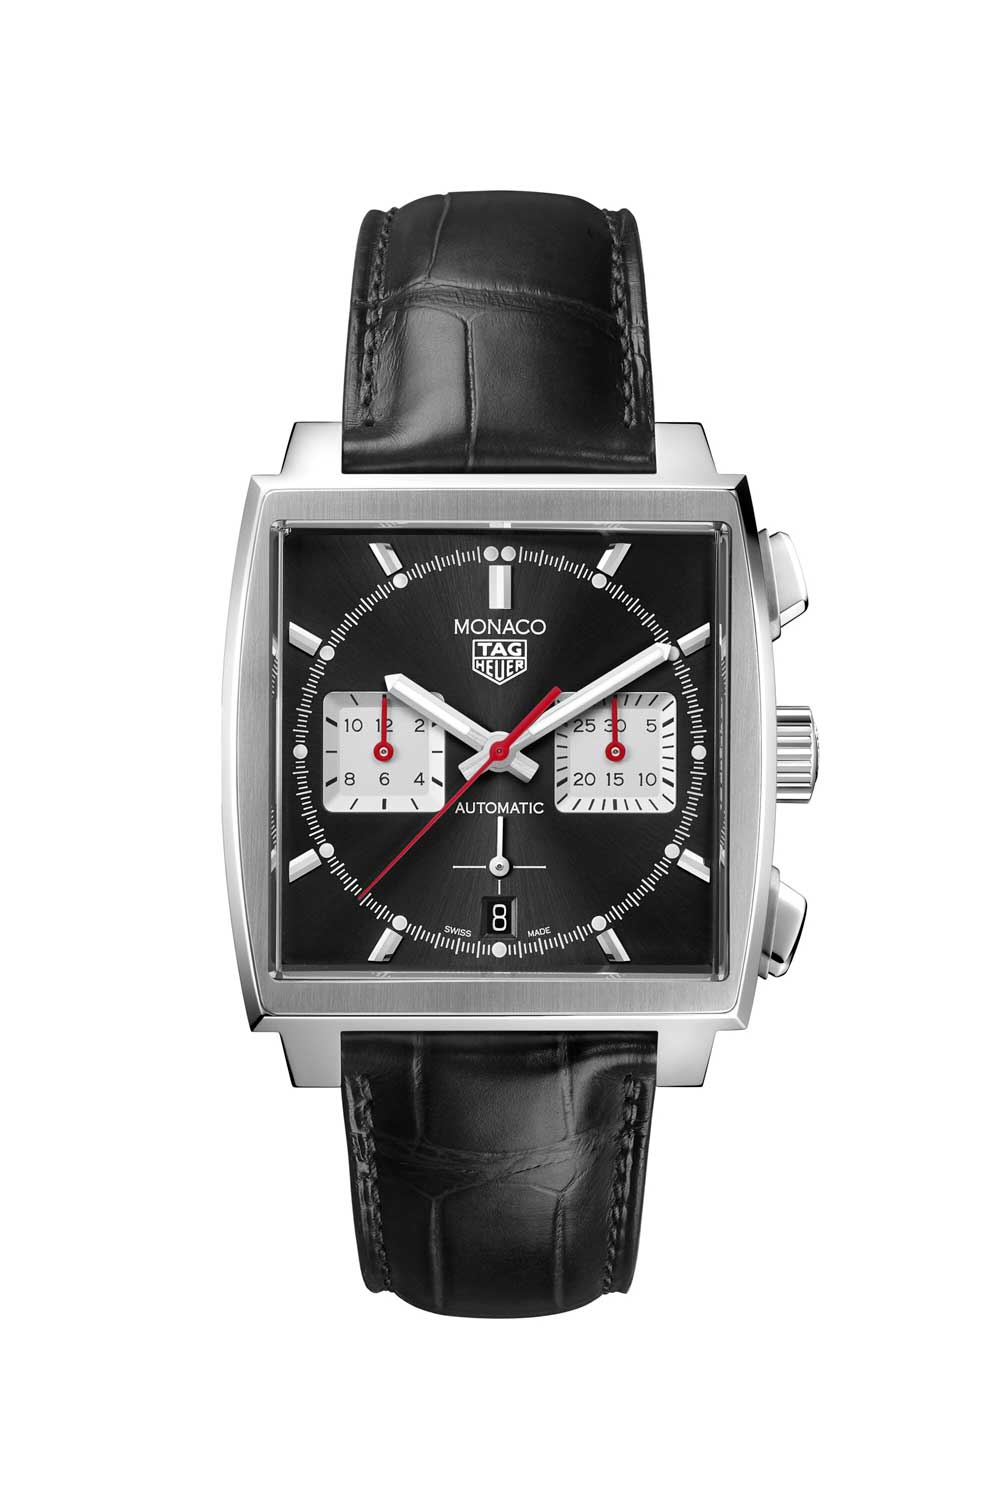 The TAG Heuer Monaco Chronograph 39mm Calibre Heuer 02 Automatic ref. CBL2113.FC6177 with the black dial